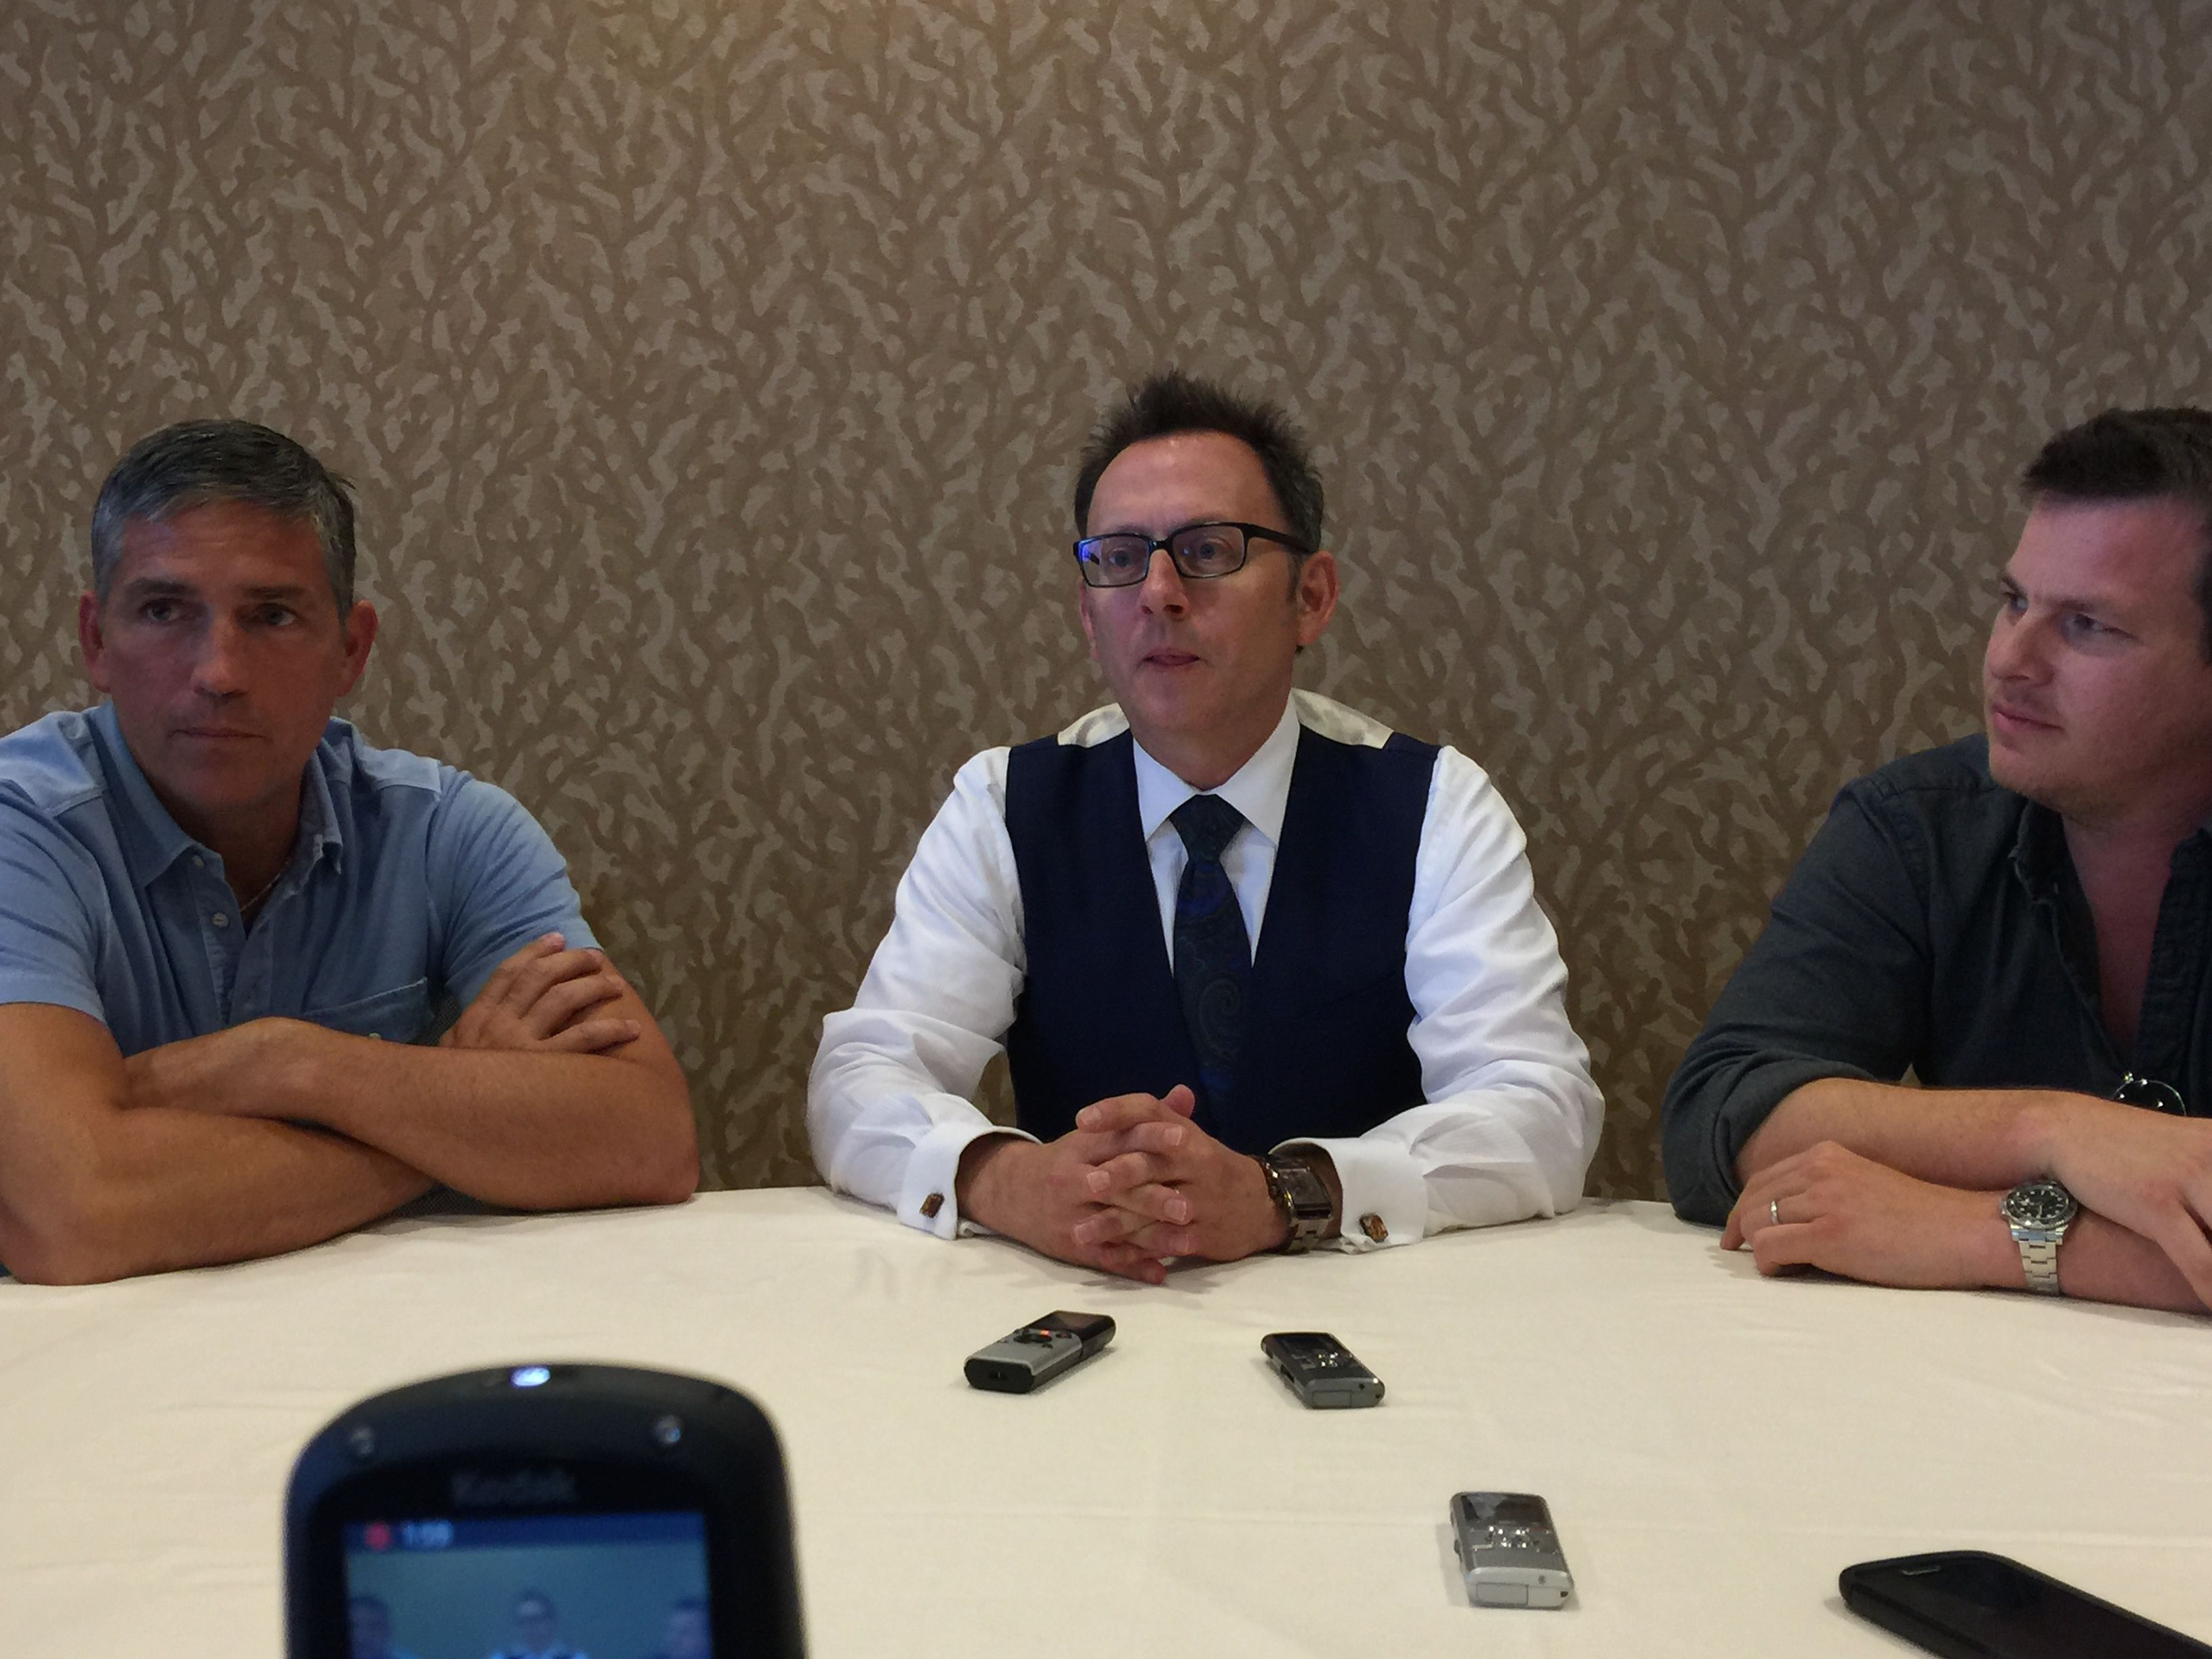 Comic-Con 2015: The Cast and EPs of Person of Interest Preview Season 5